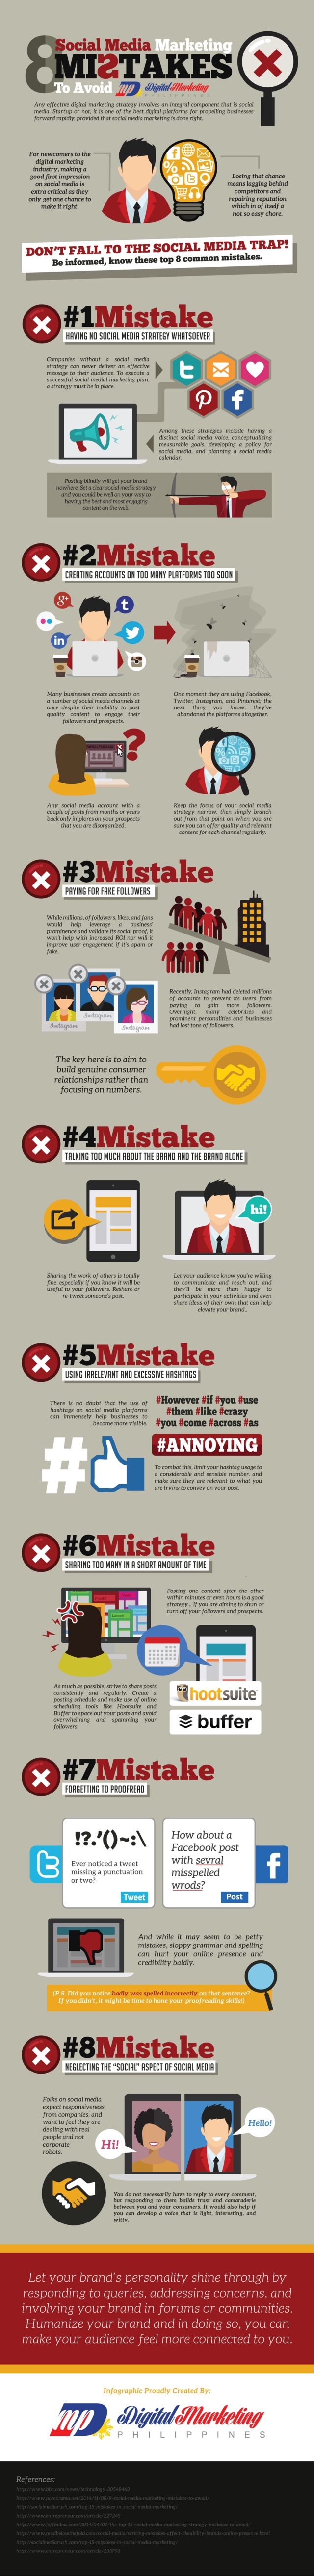 8 Social Media Mistakes That Will Destroy Your Online Reputation